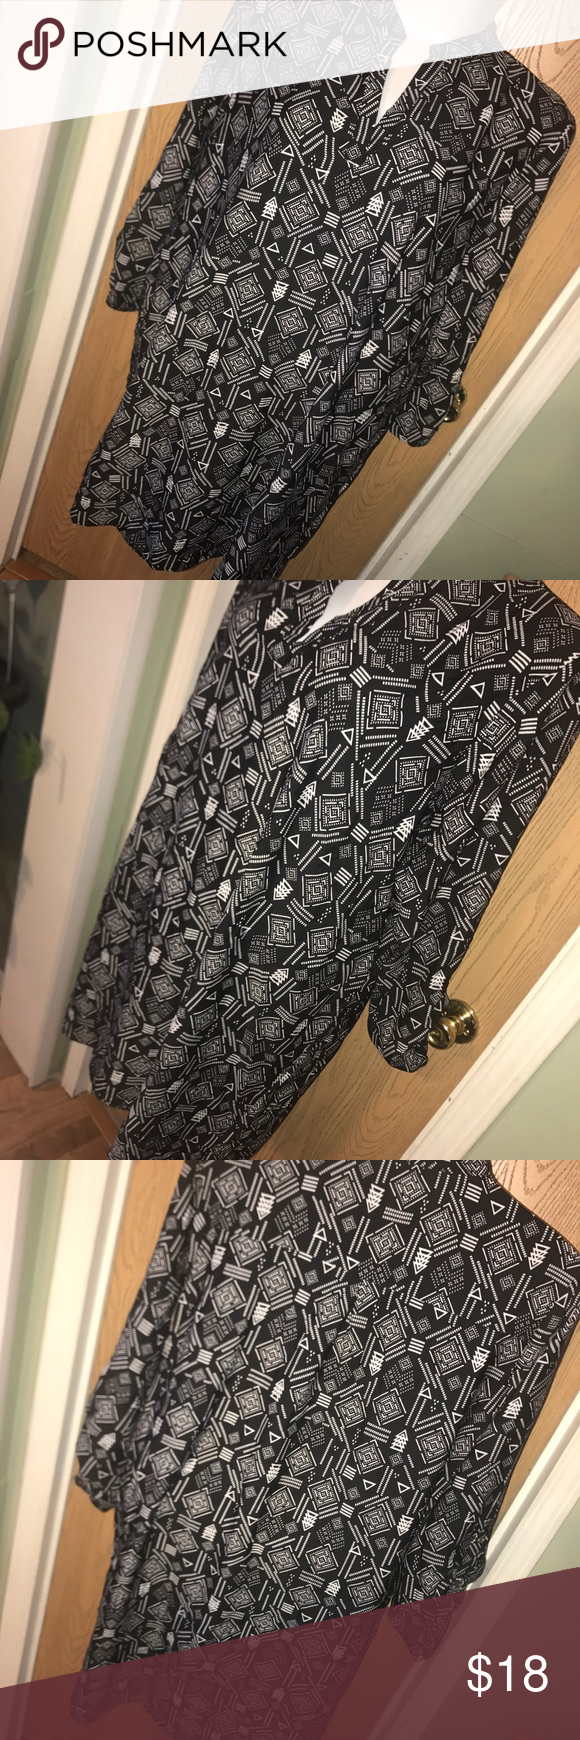 "Black & white printed shirt dress Super cute black and white printed shirt dress. Great used condition. Size 3x. 100% polyester. 28"" from armpit to armpit, 29"" from armpit to hem. indulge Dresses"